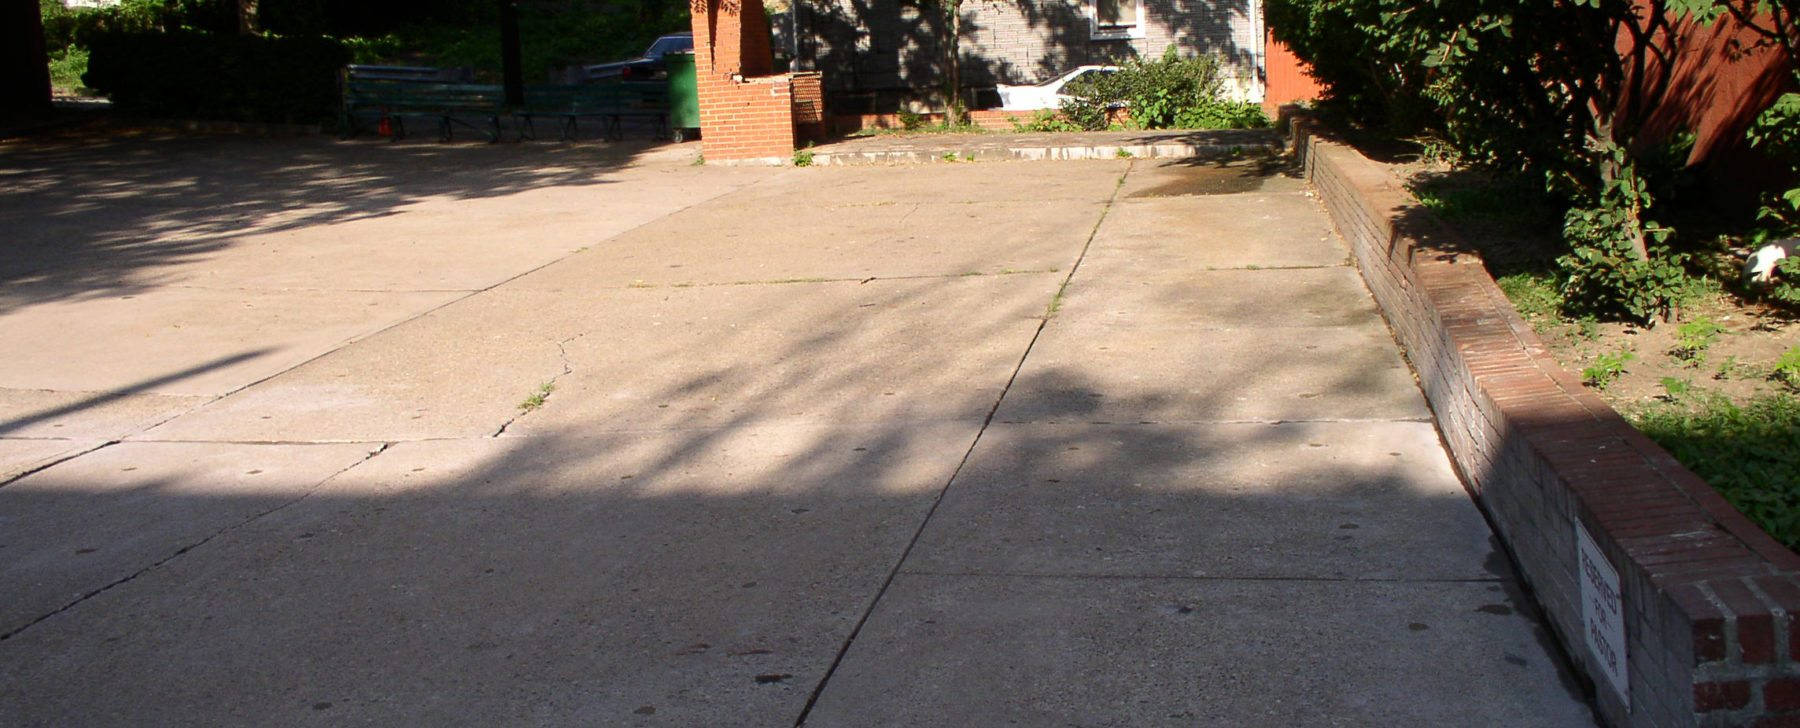 Featured projects a1 concrete leveling great lakes region how strong is a 1 concrete leveling solutioingenieria Images